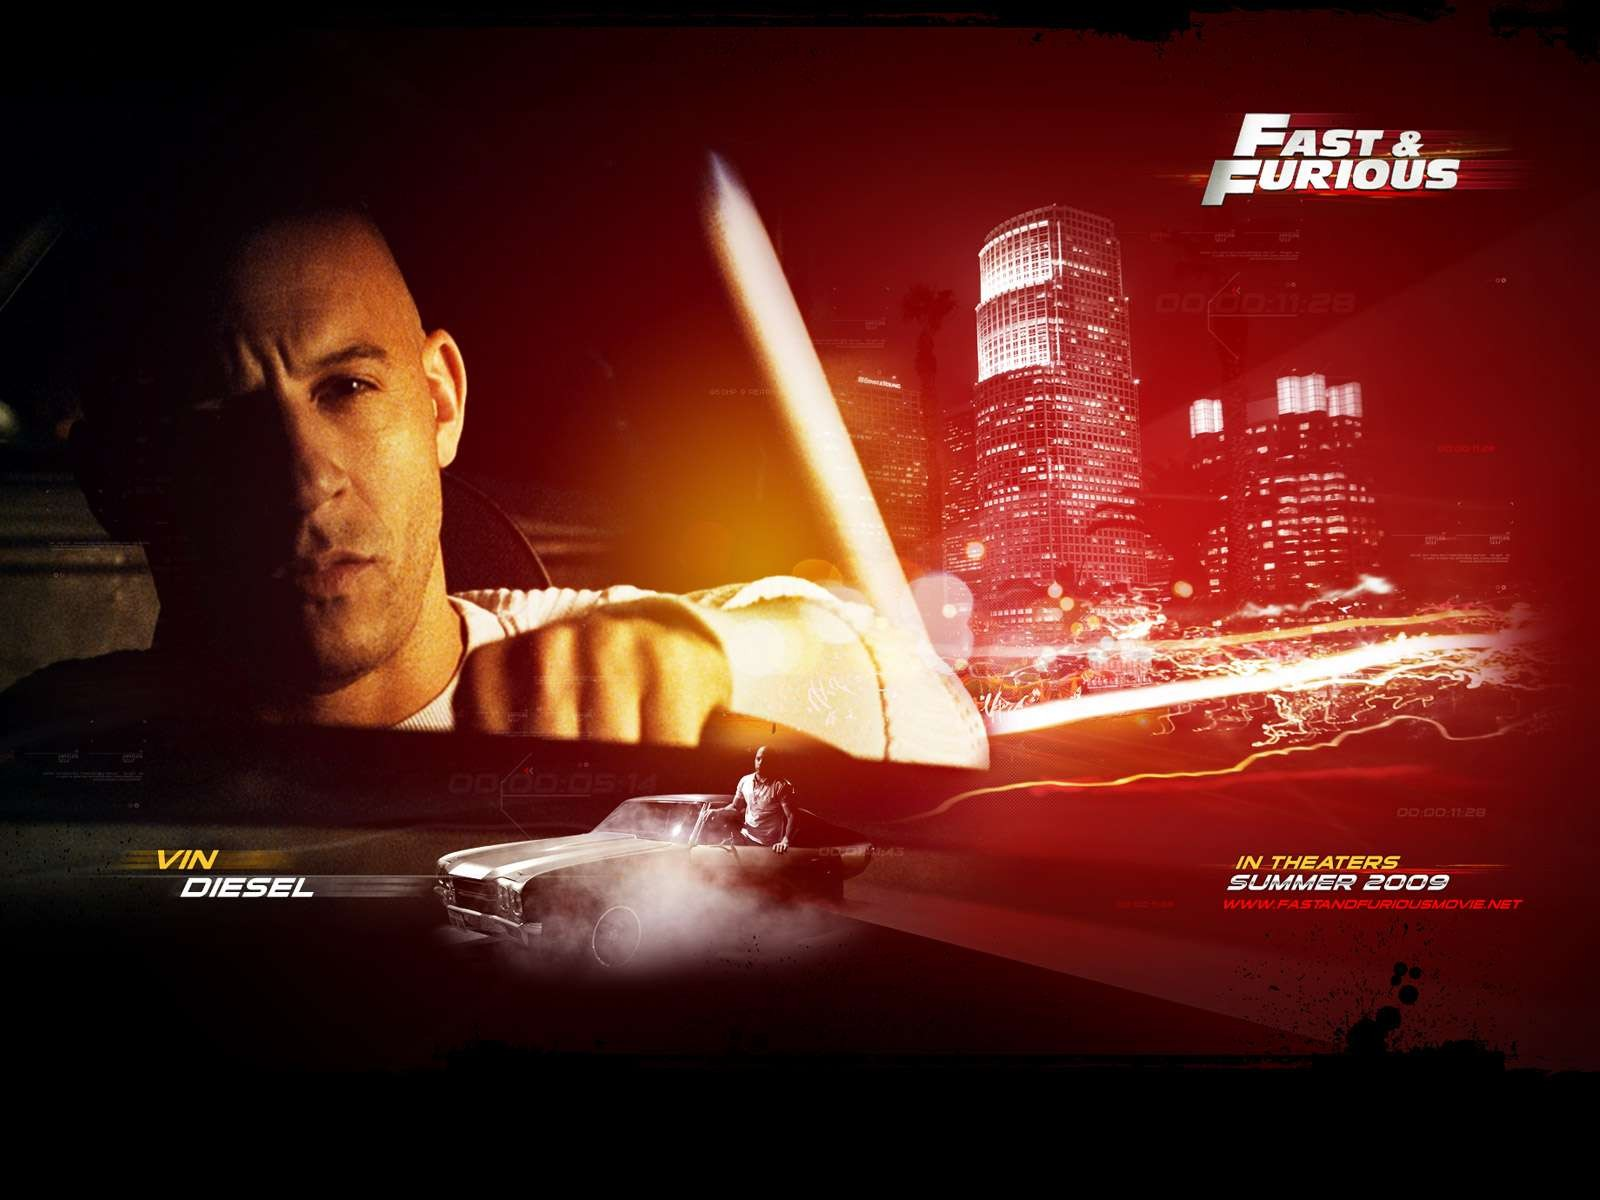 Un wallpaper del film Fast and Furious - Solo parti originali con Vin Diesel